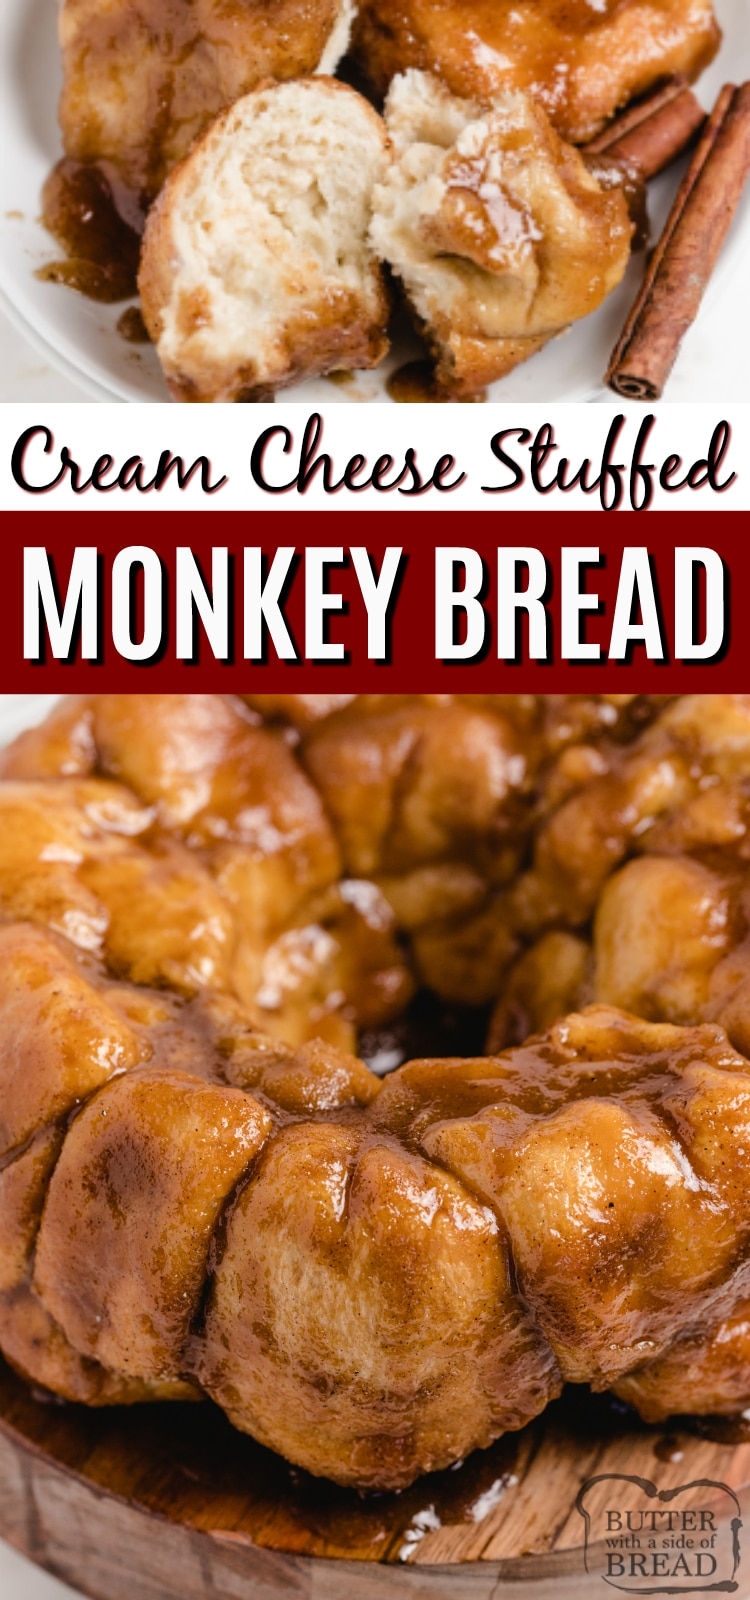 Cream Cheese Stuffed Monkey Bread - warm, gooey cinnamon rolls made with frozen rolls that are filled with cream cheese and coated in brown sugar, butter and cinnamon sugar. Only 5 ingredients to make delicious cinnamon roll monkey bread!